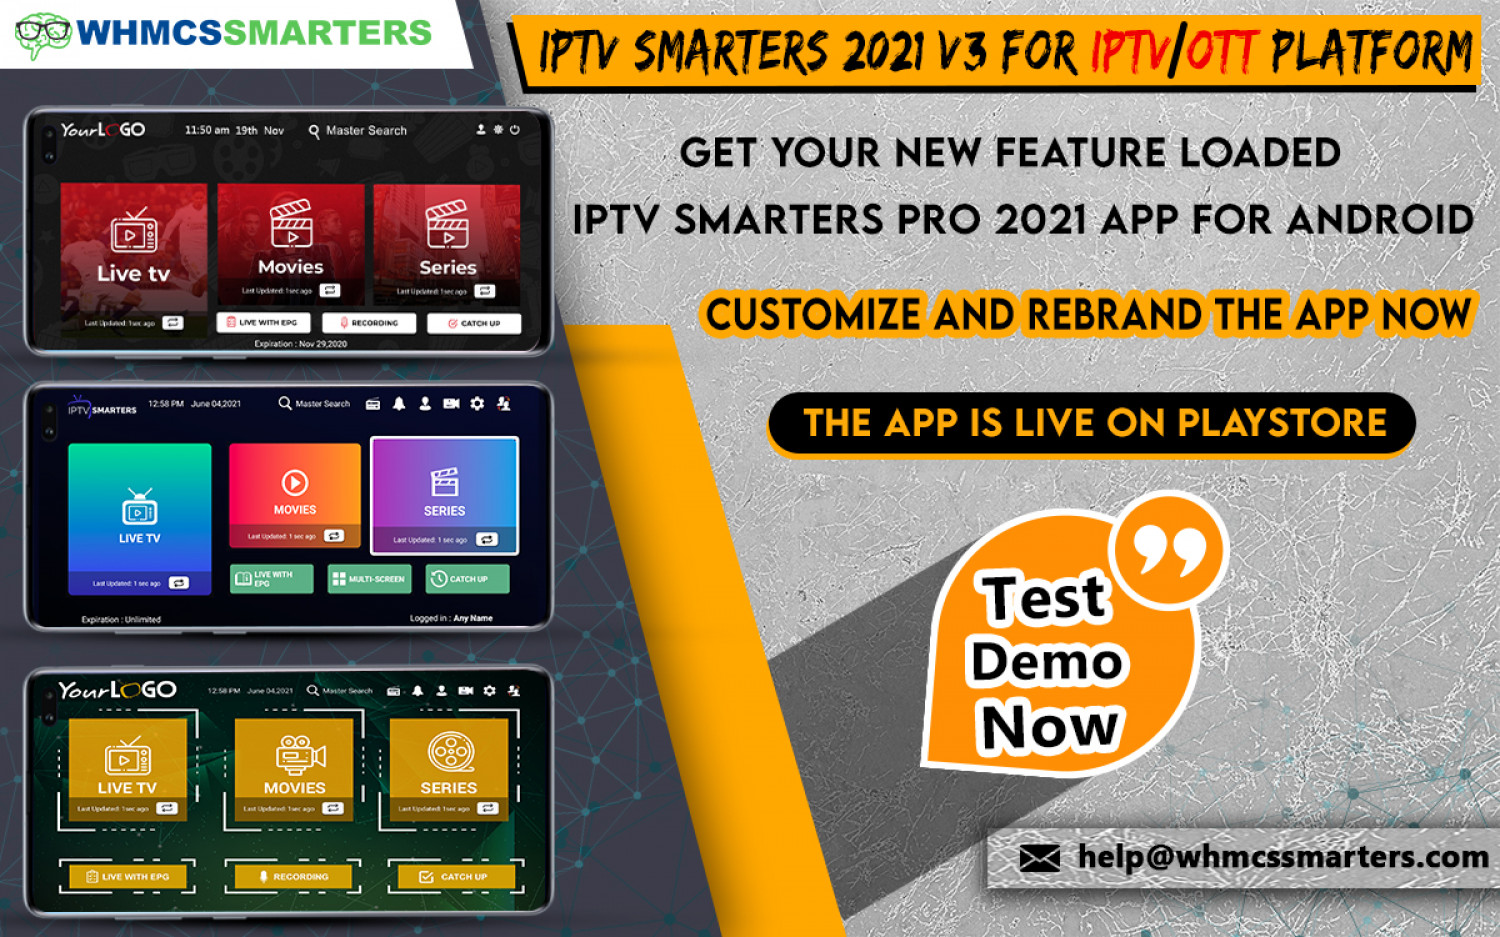 IPTV SMARTERS PRO 2021 V3.0 LAUNCHED WITH NEW AMAZING FEATURES & IMPROVEMENTS Infographic